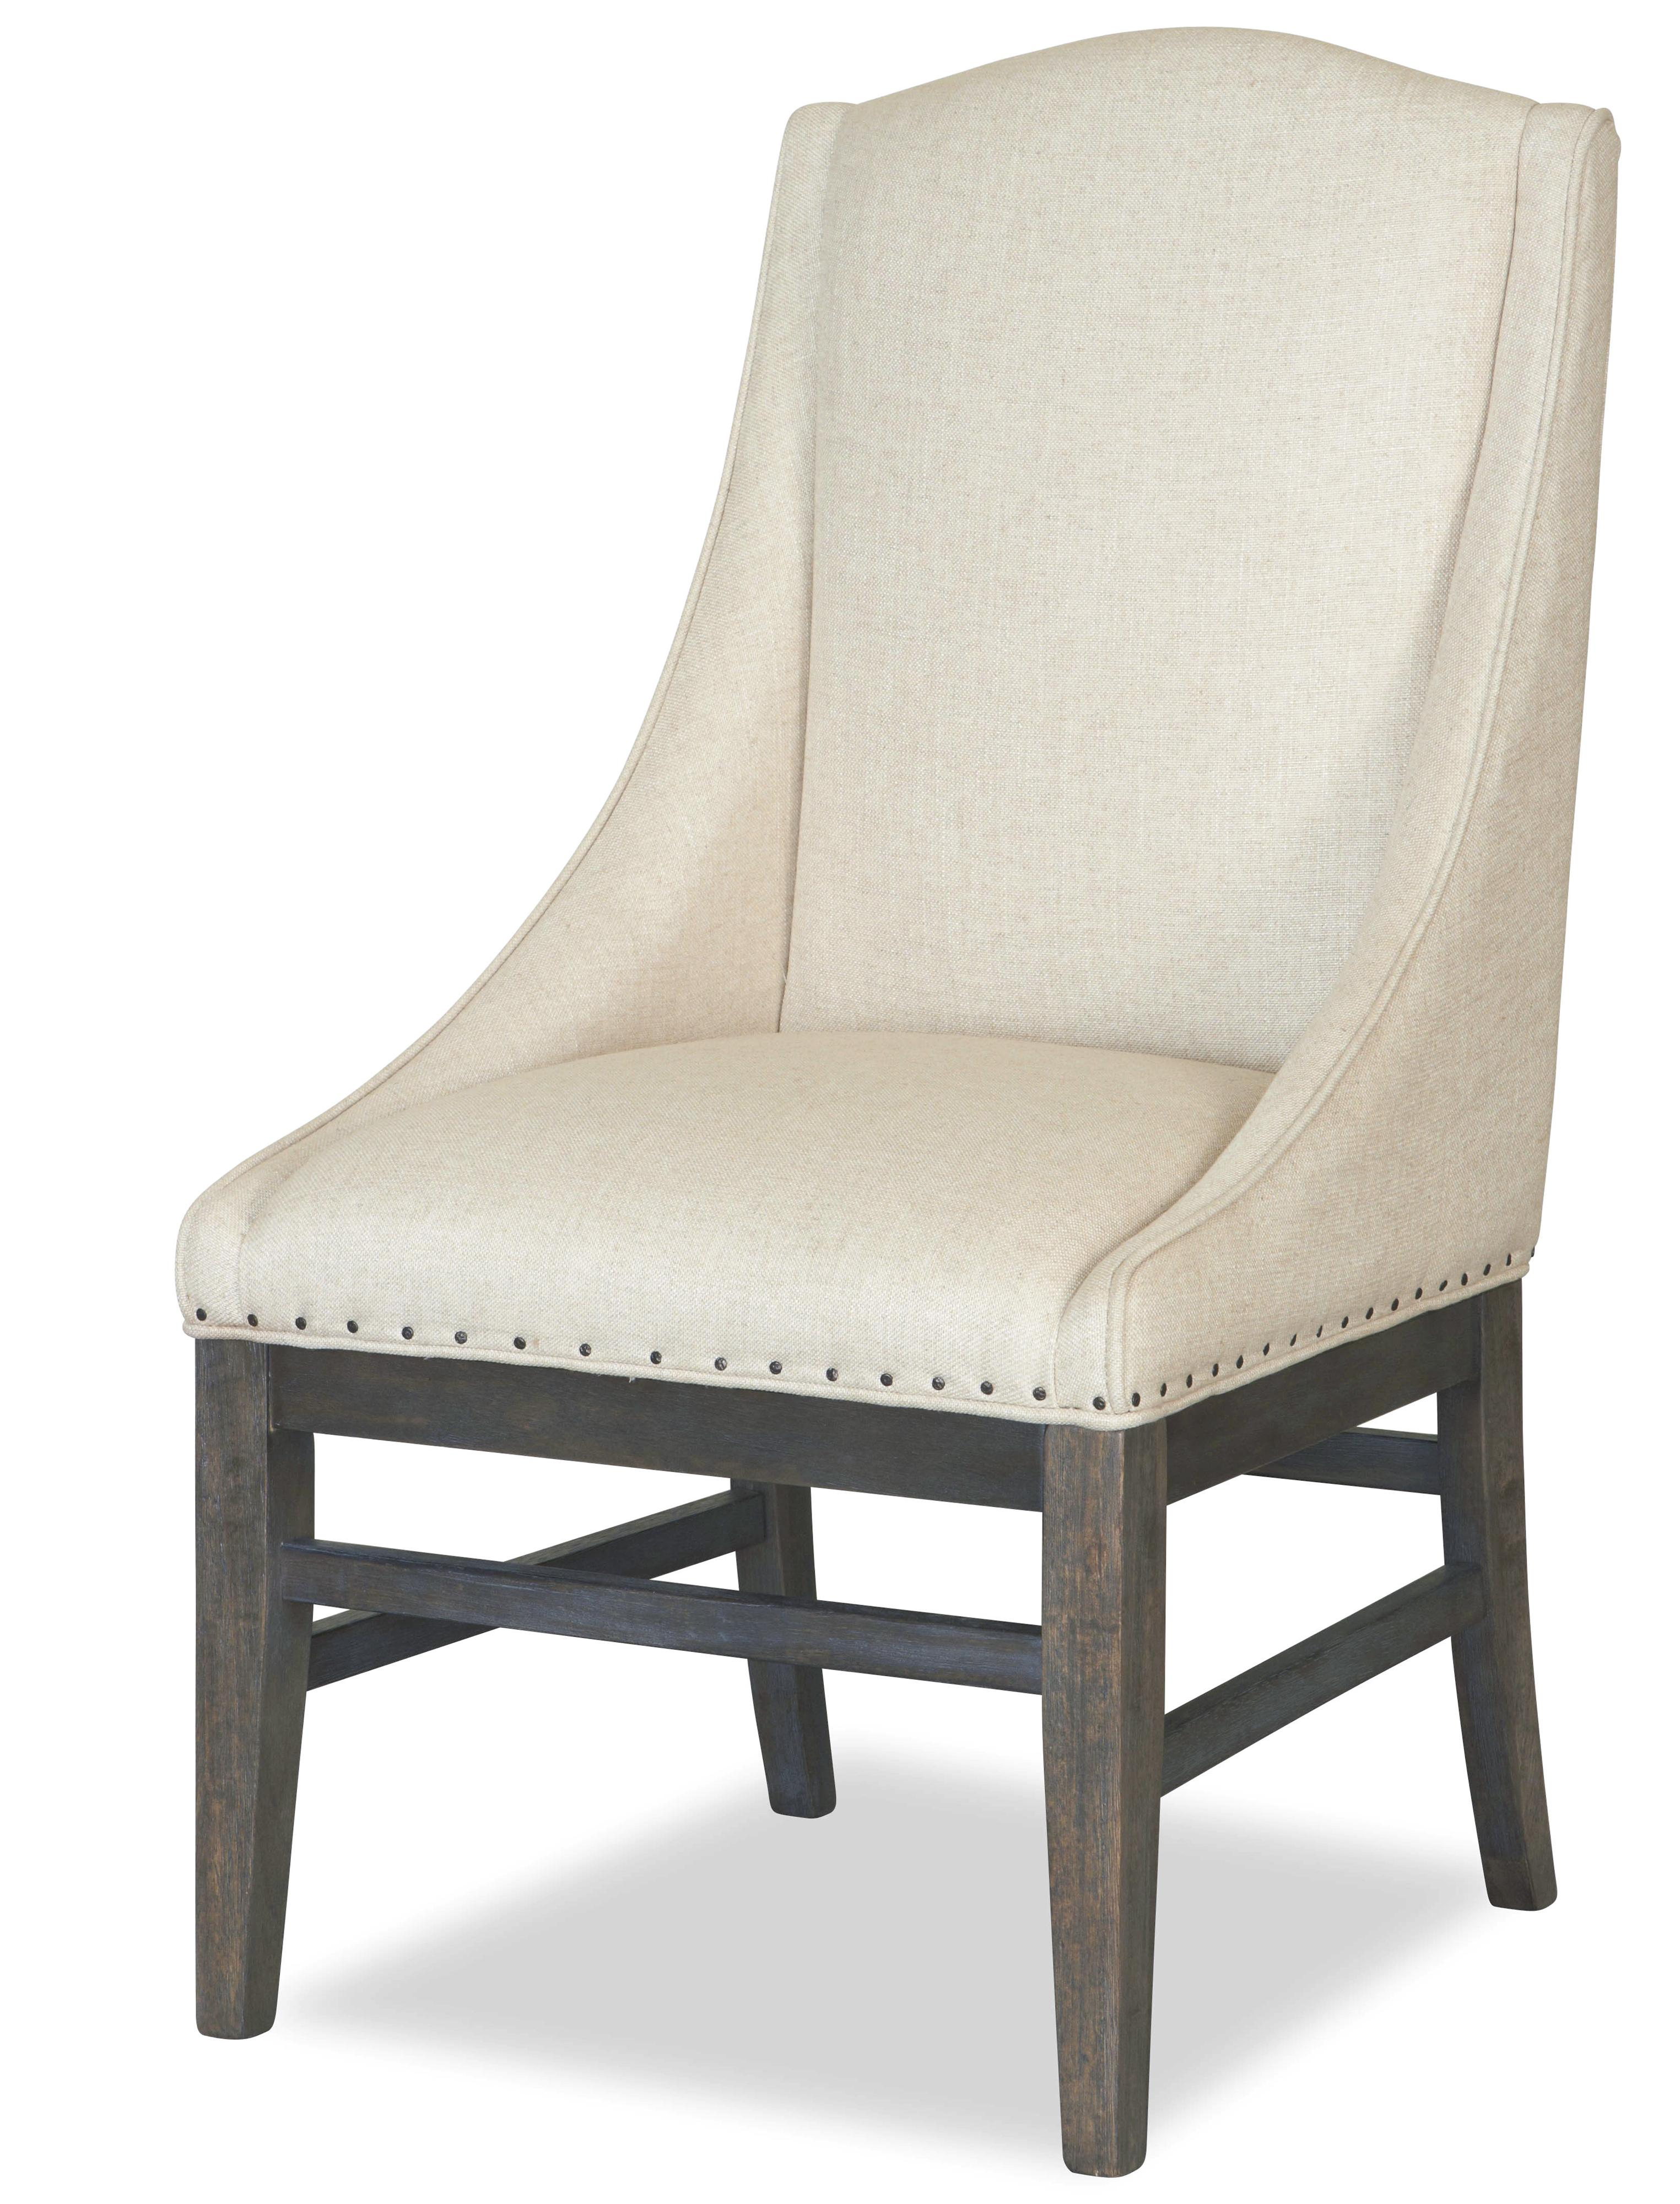 Universal Curated Urban Arm Chair - Item Number: 311739-RTA